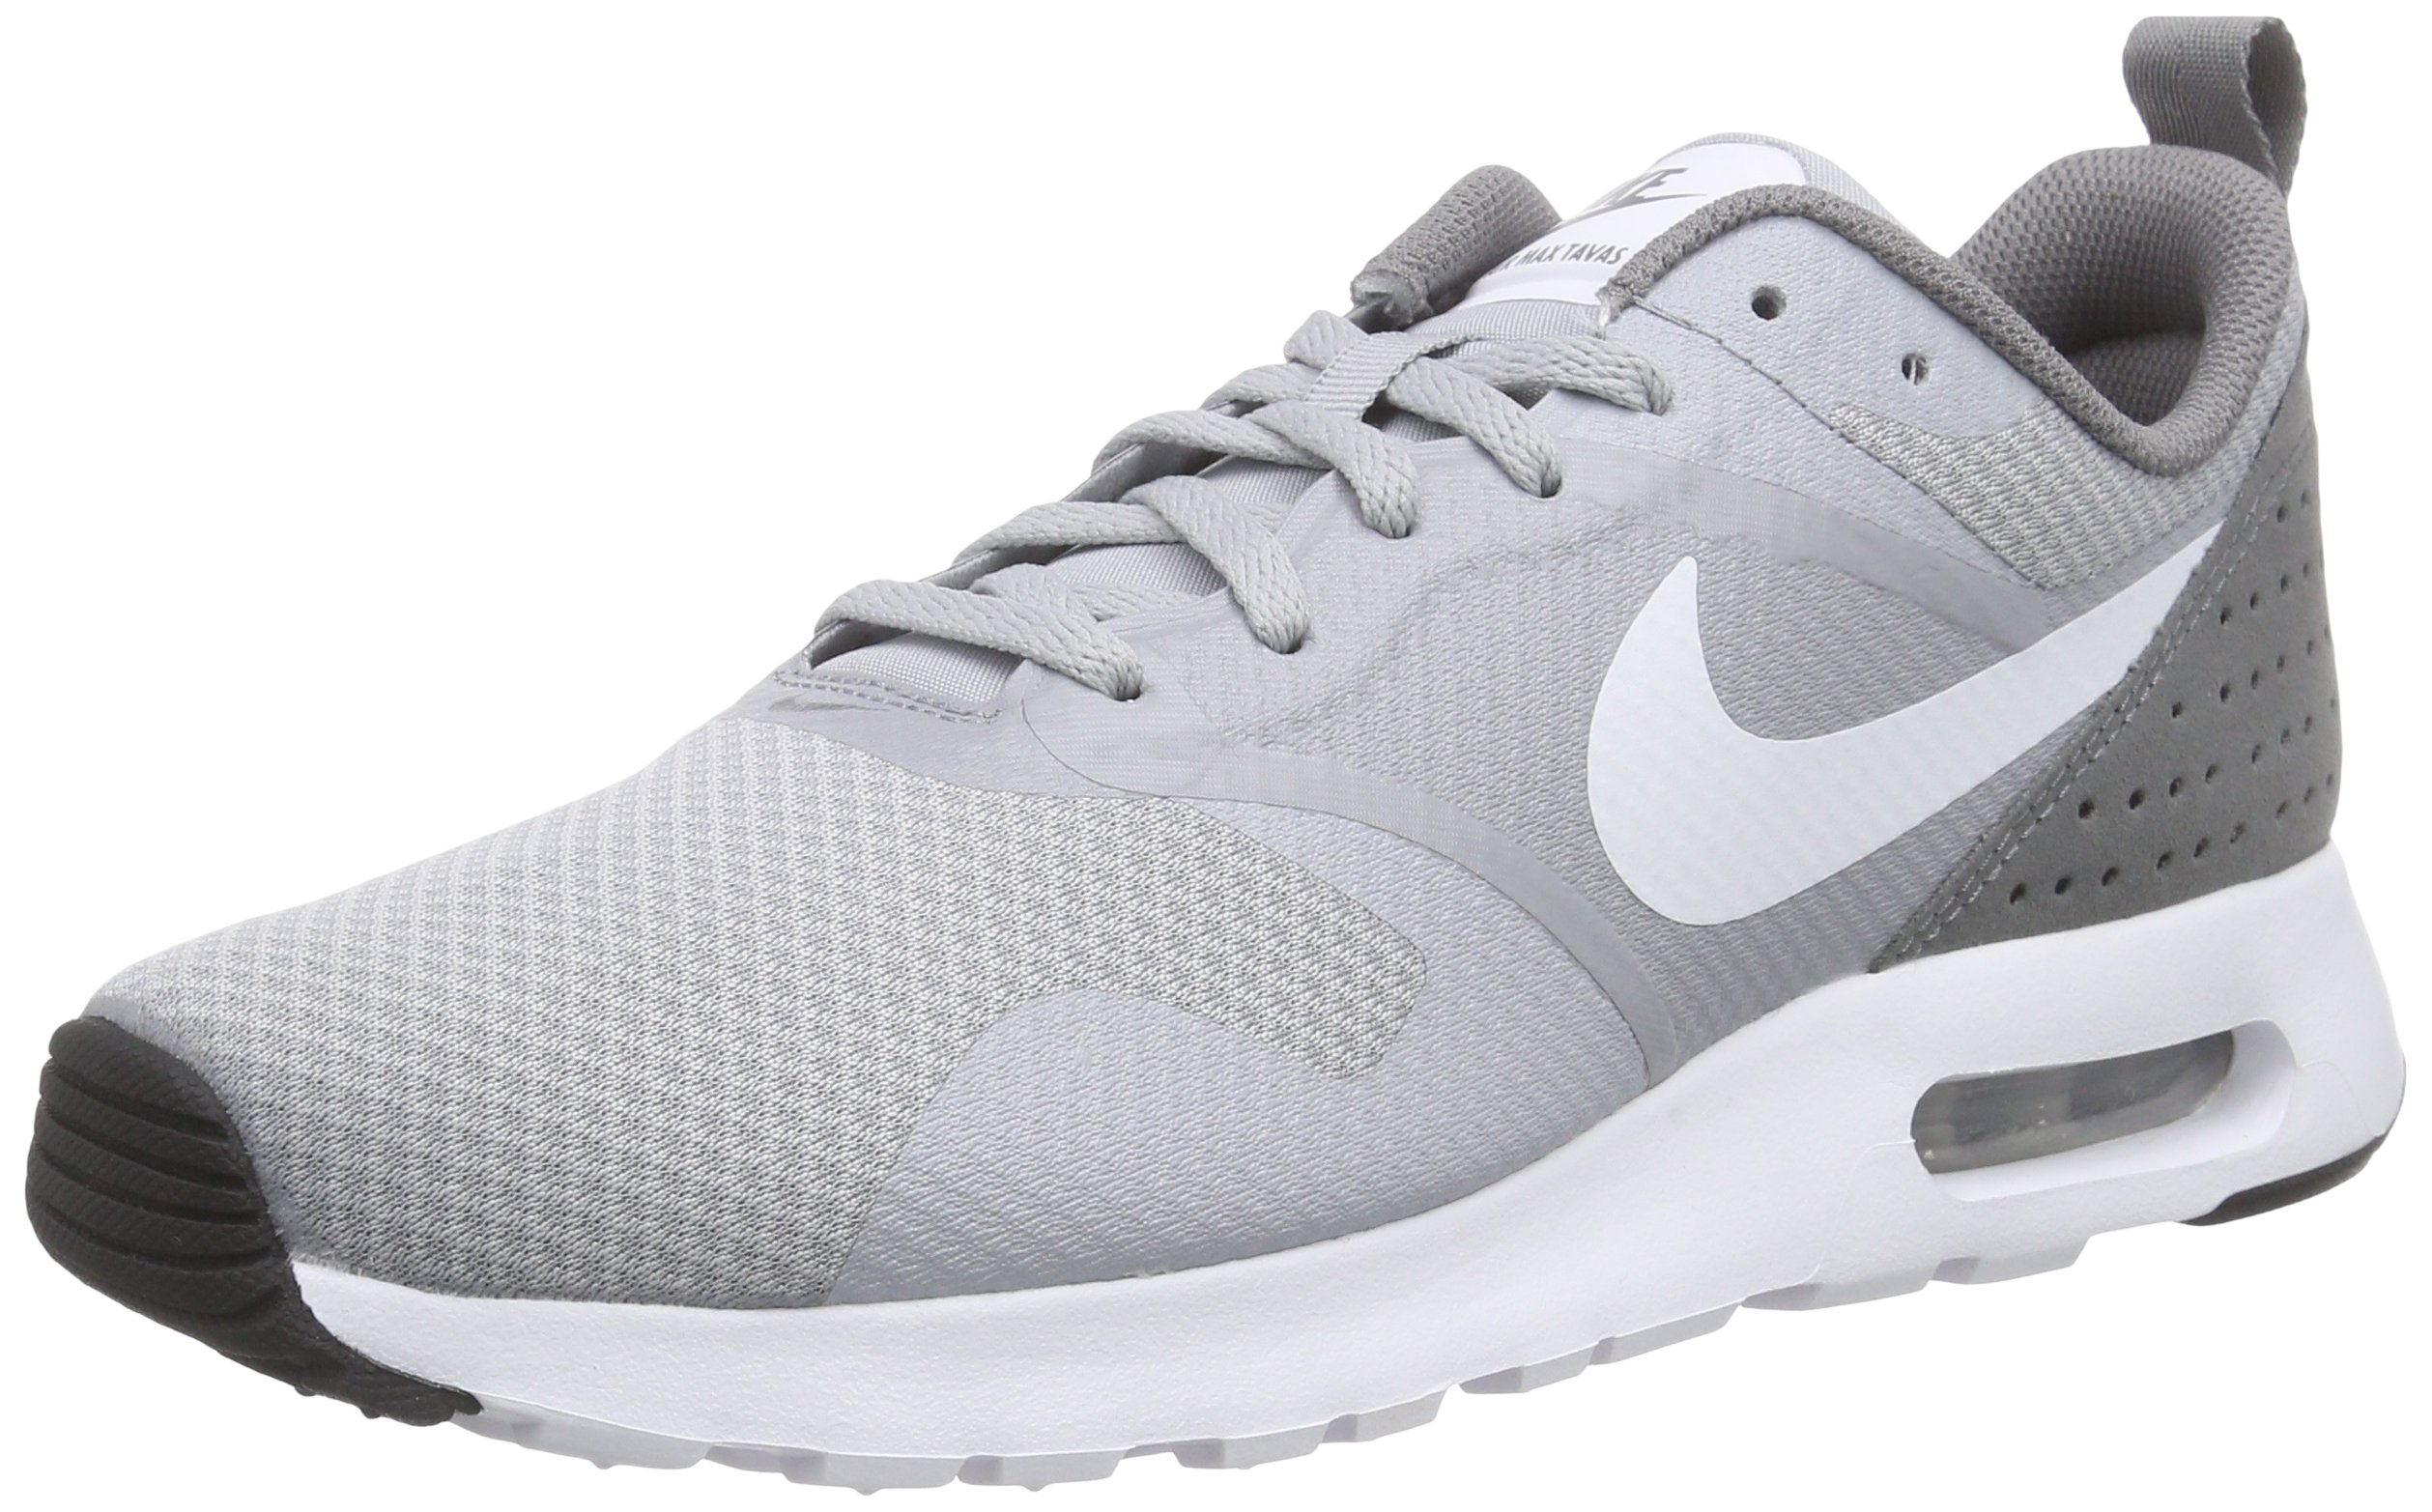 017e01bc66 Galleon - Nike Air Max Tavas Mens Running Trainers 705149 Sneakers Shoes  (US 8.5, Wolf Grey White Cool Grey White 007)